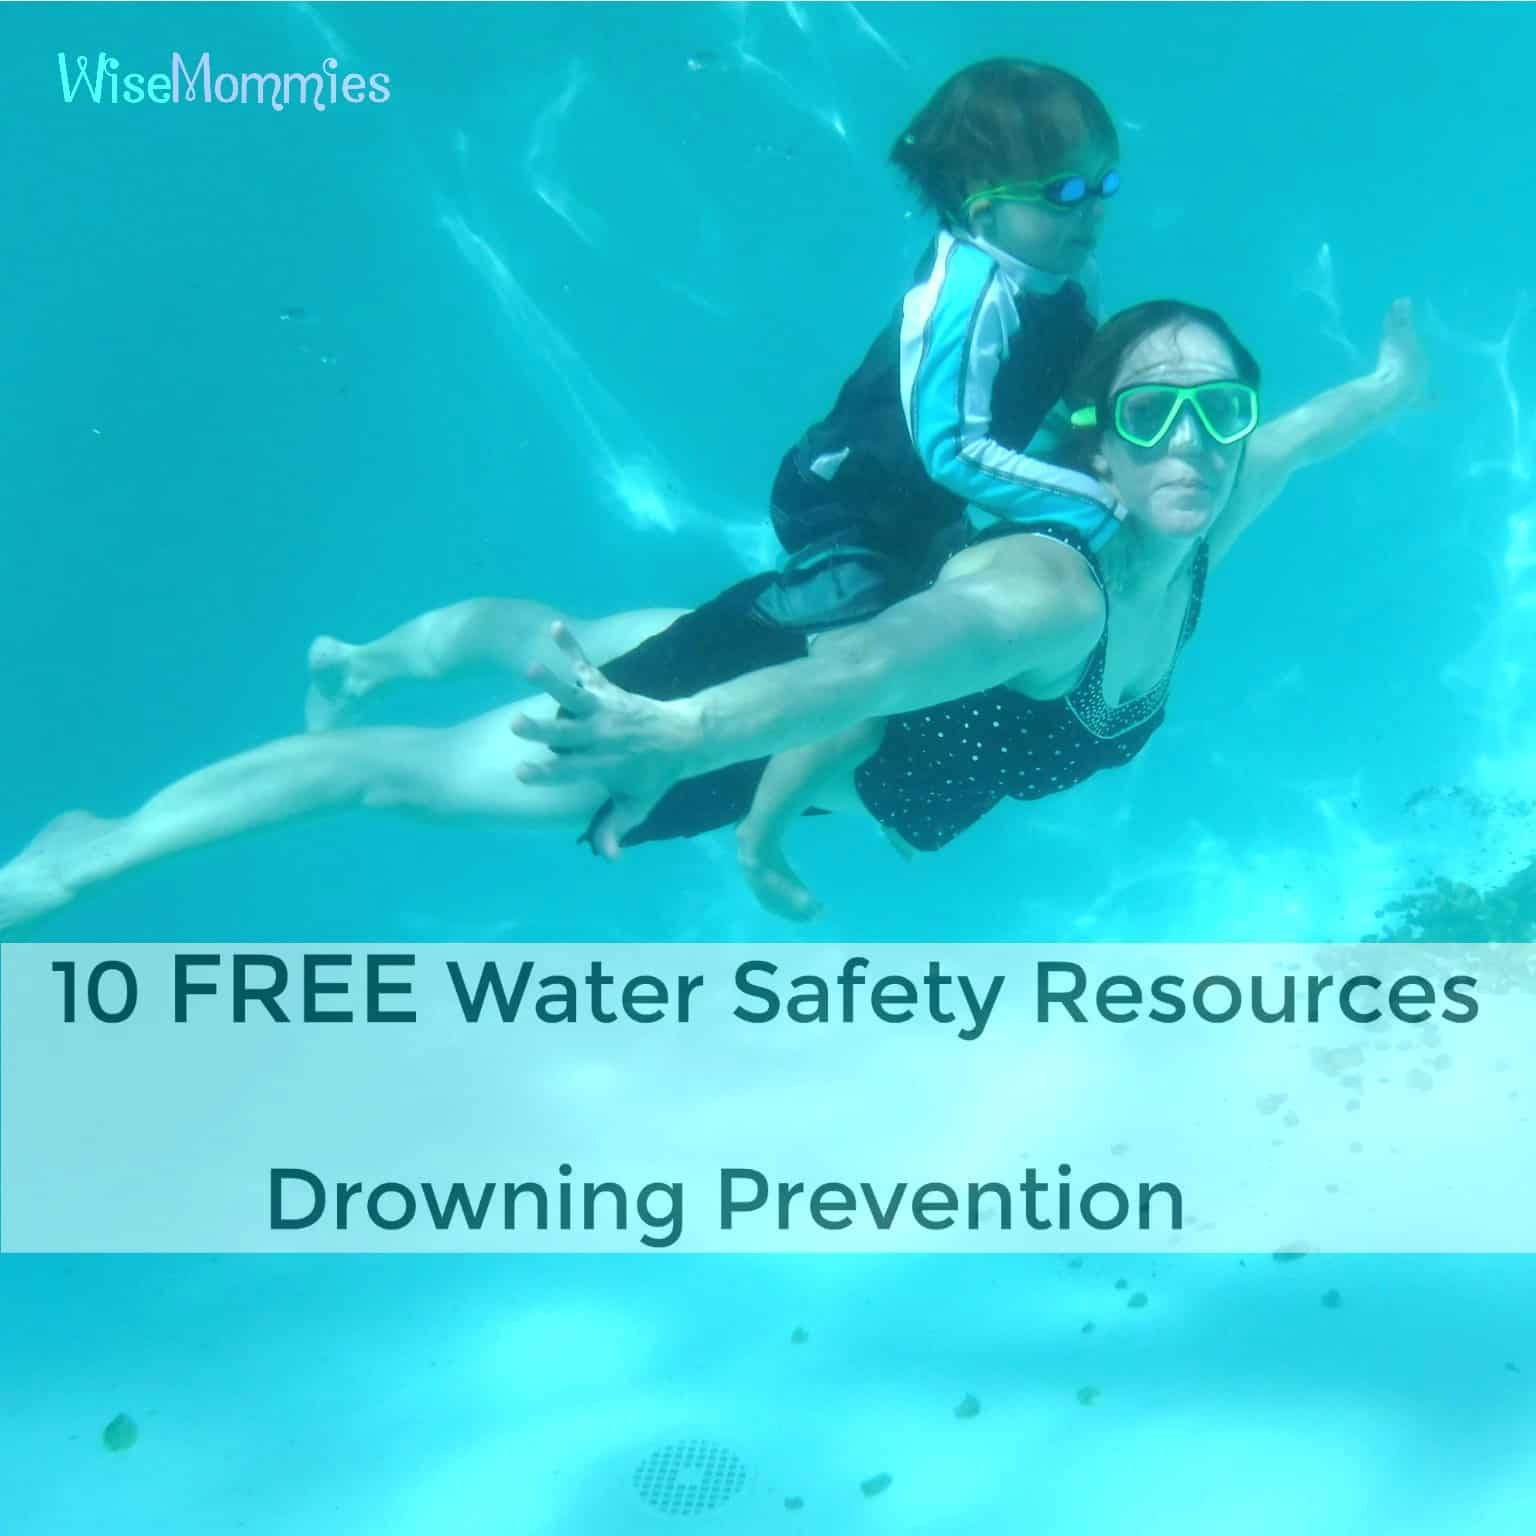 #watersafety #poolsafety #swimming